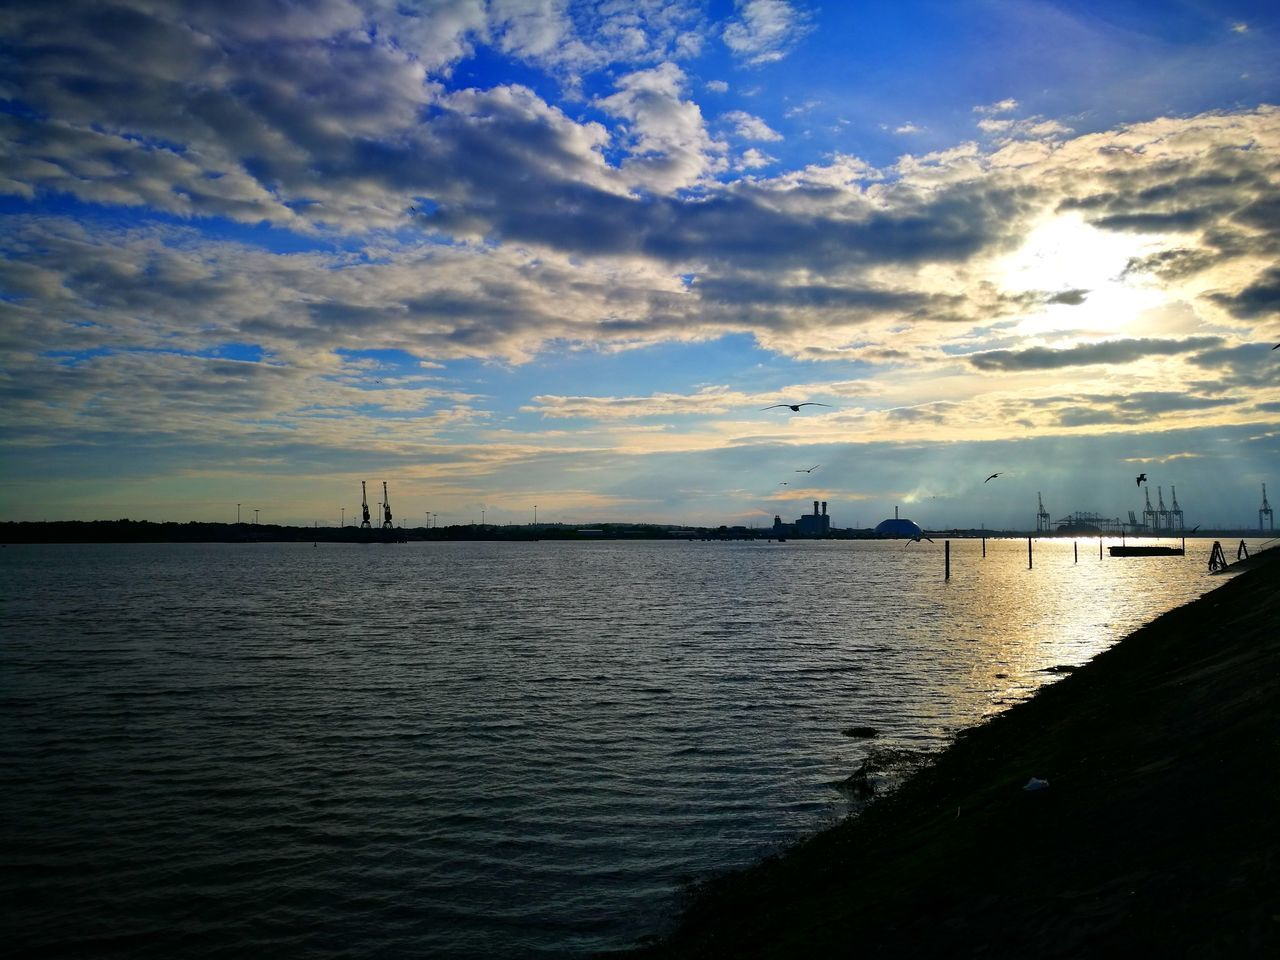 Southampton Docks Sea Water Sunset Cloud - Sky Outdoors Sky No People Vacations Tranquility Silhouette Horizon Over Water Nature Scenics Beach Beauty In Nature Travel Destinations